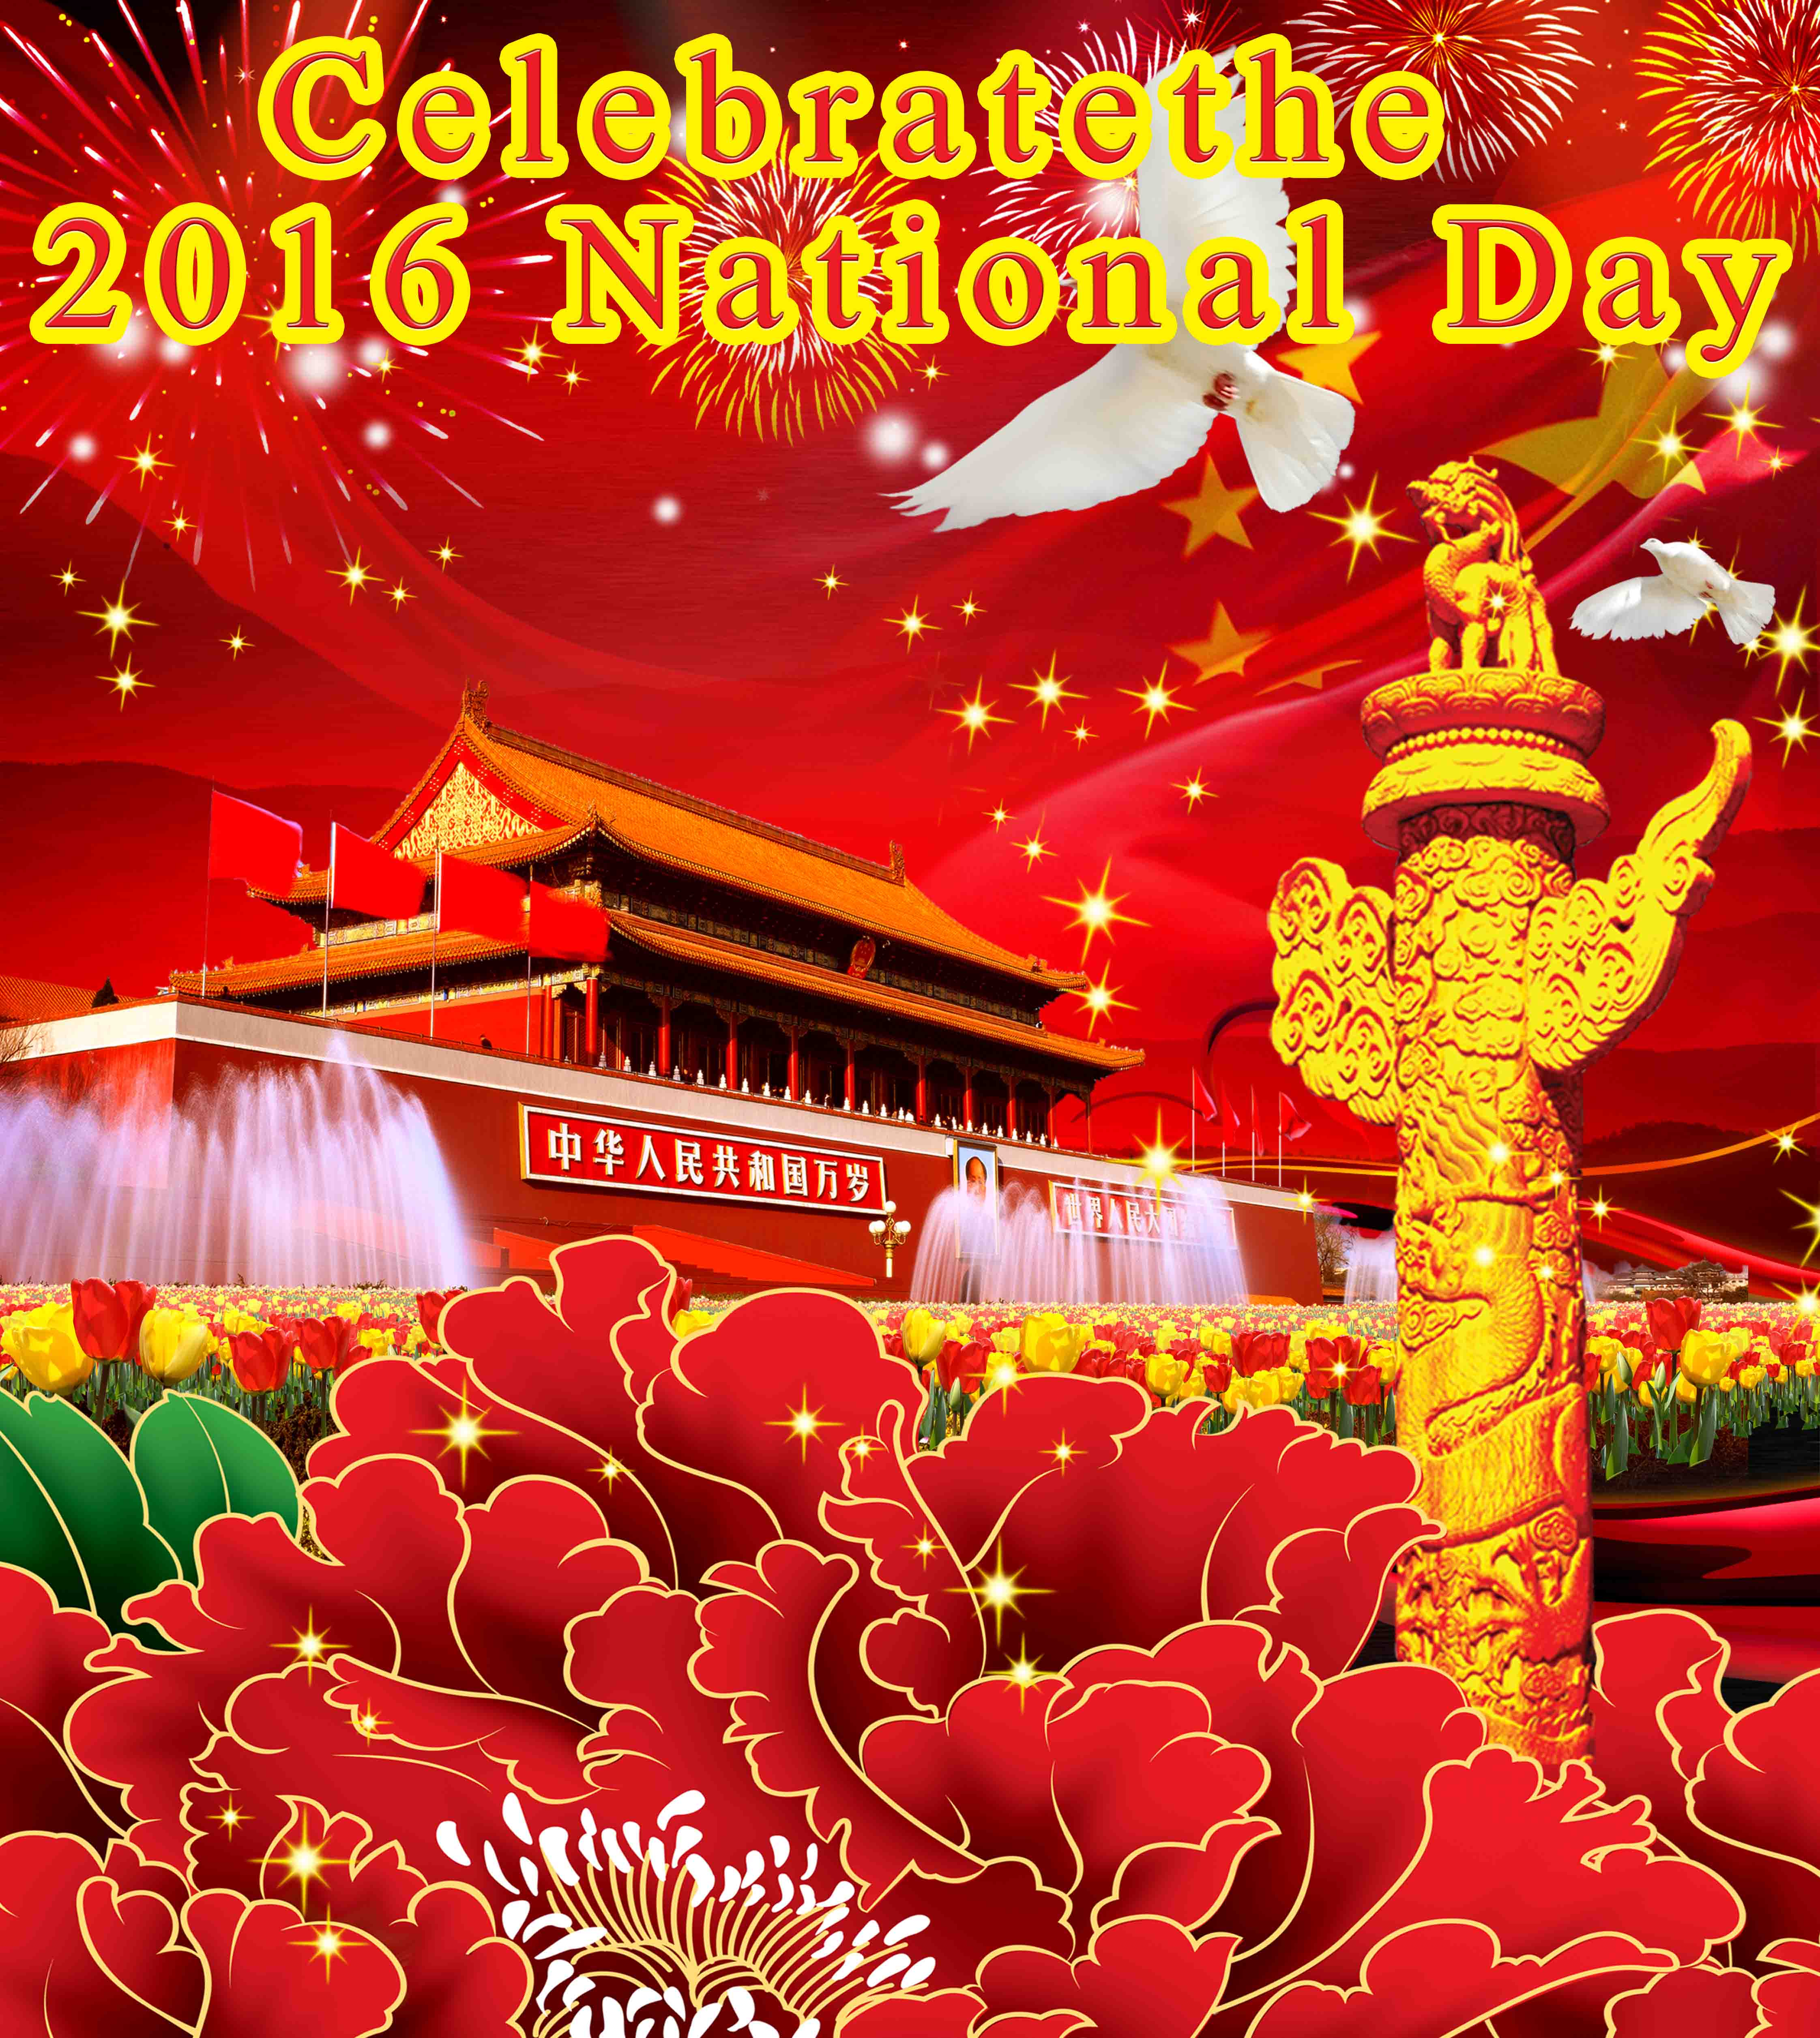 Celebrate the 2016 National Day